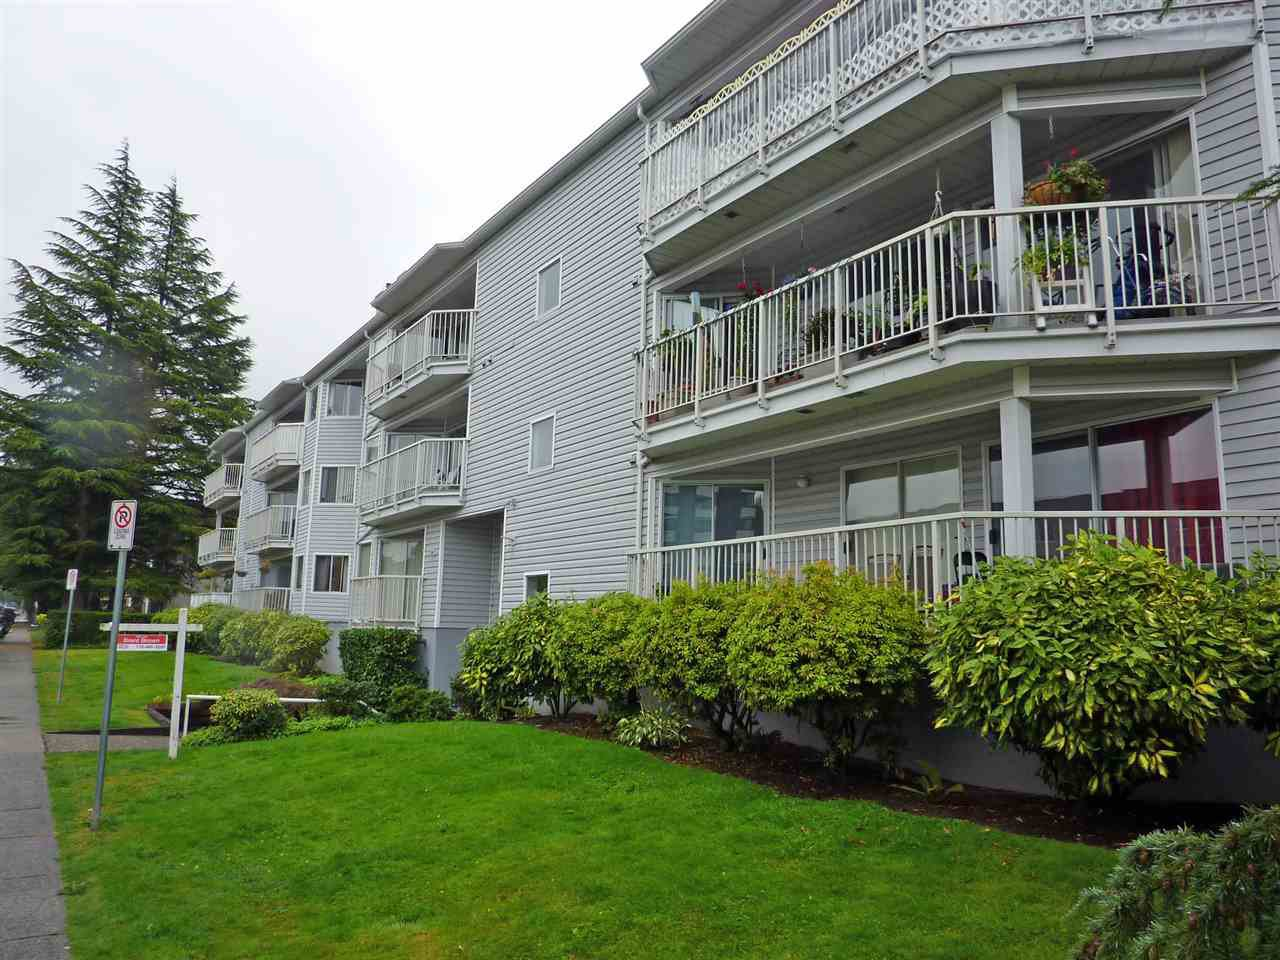 Main Photo: 204 22222 119 Avenue in Maple Ridge: West Central Condo for sale : MLS®# R2459367